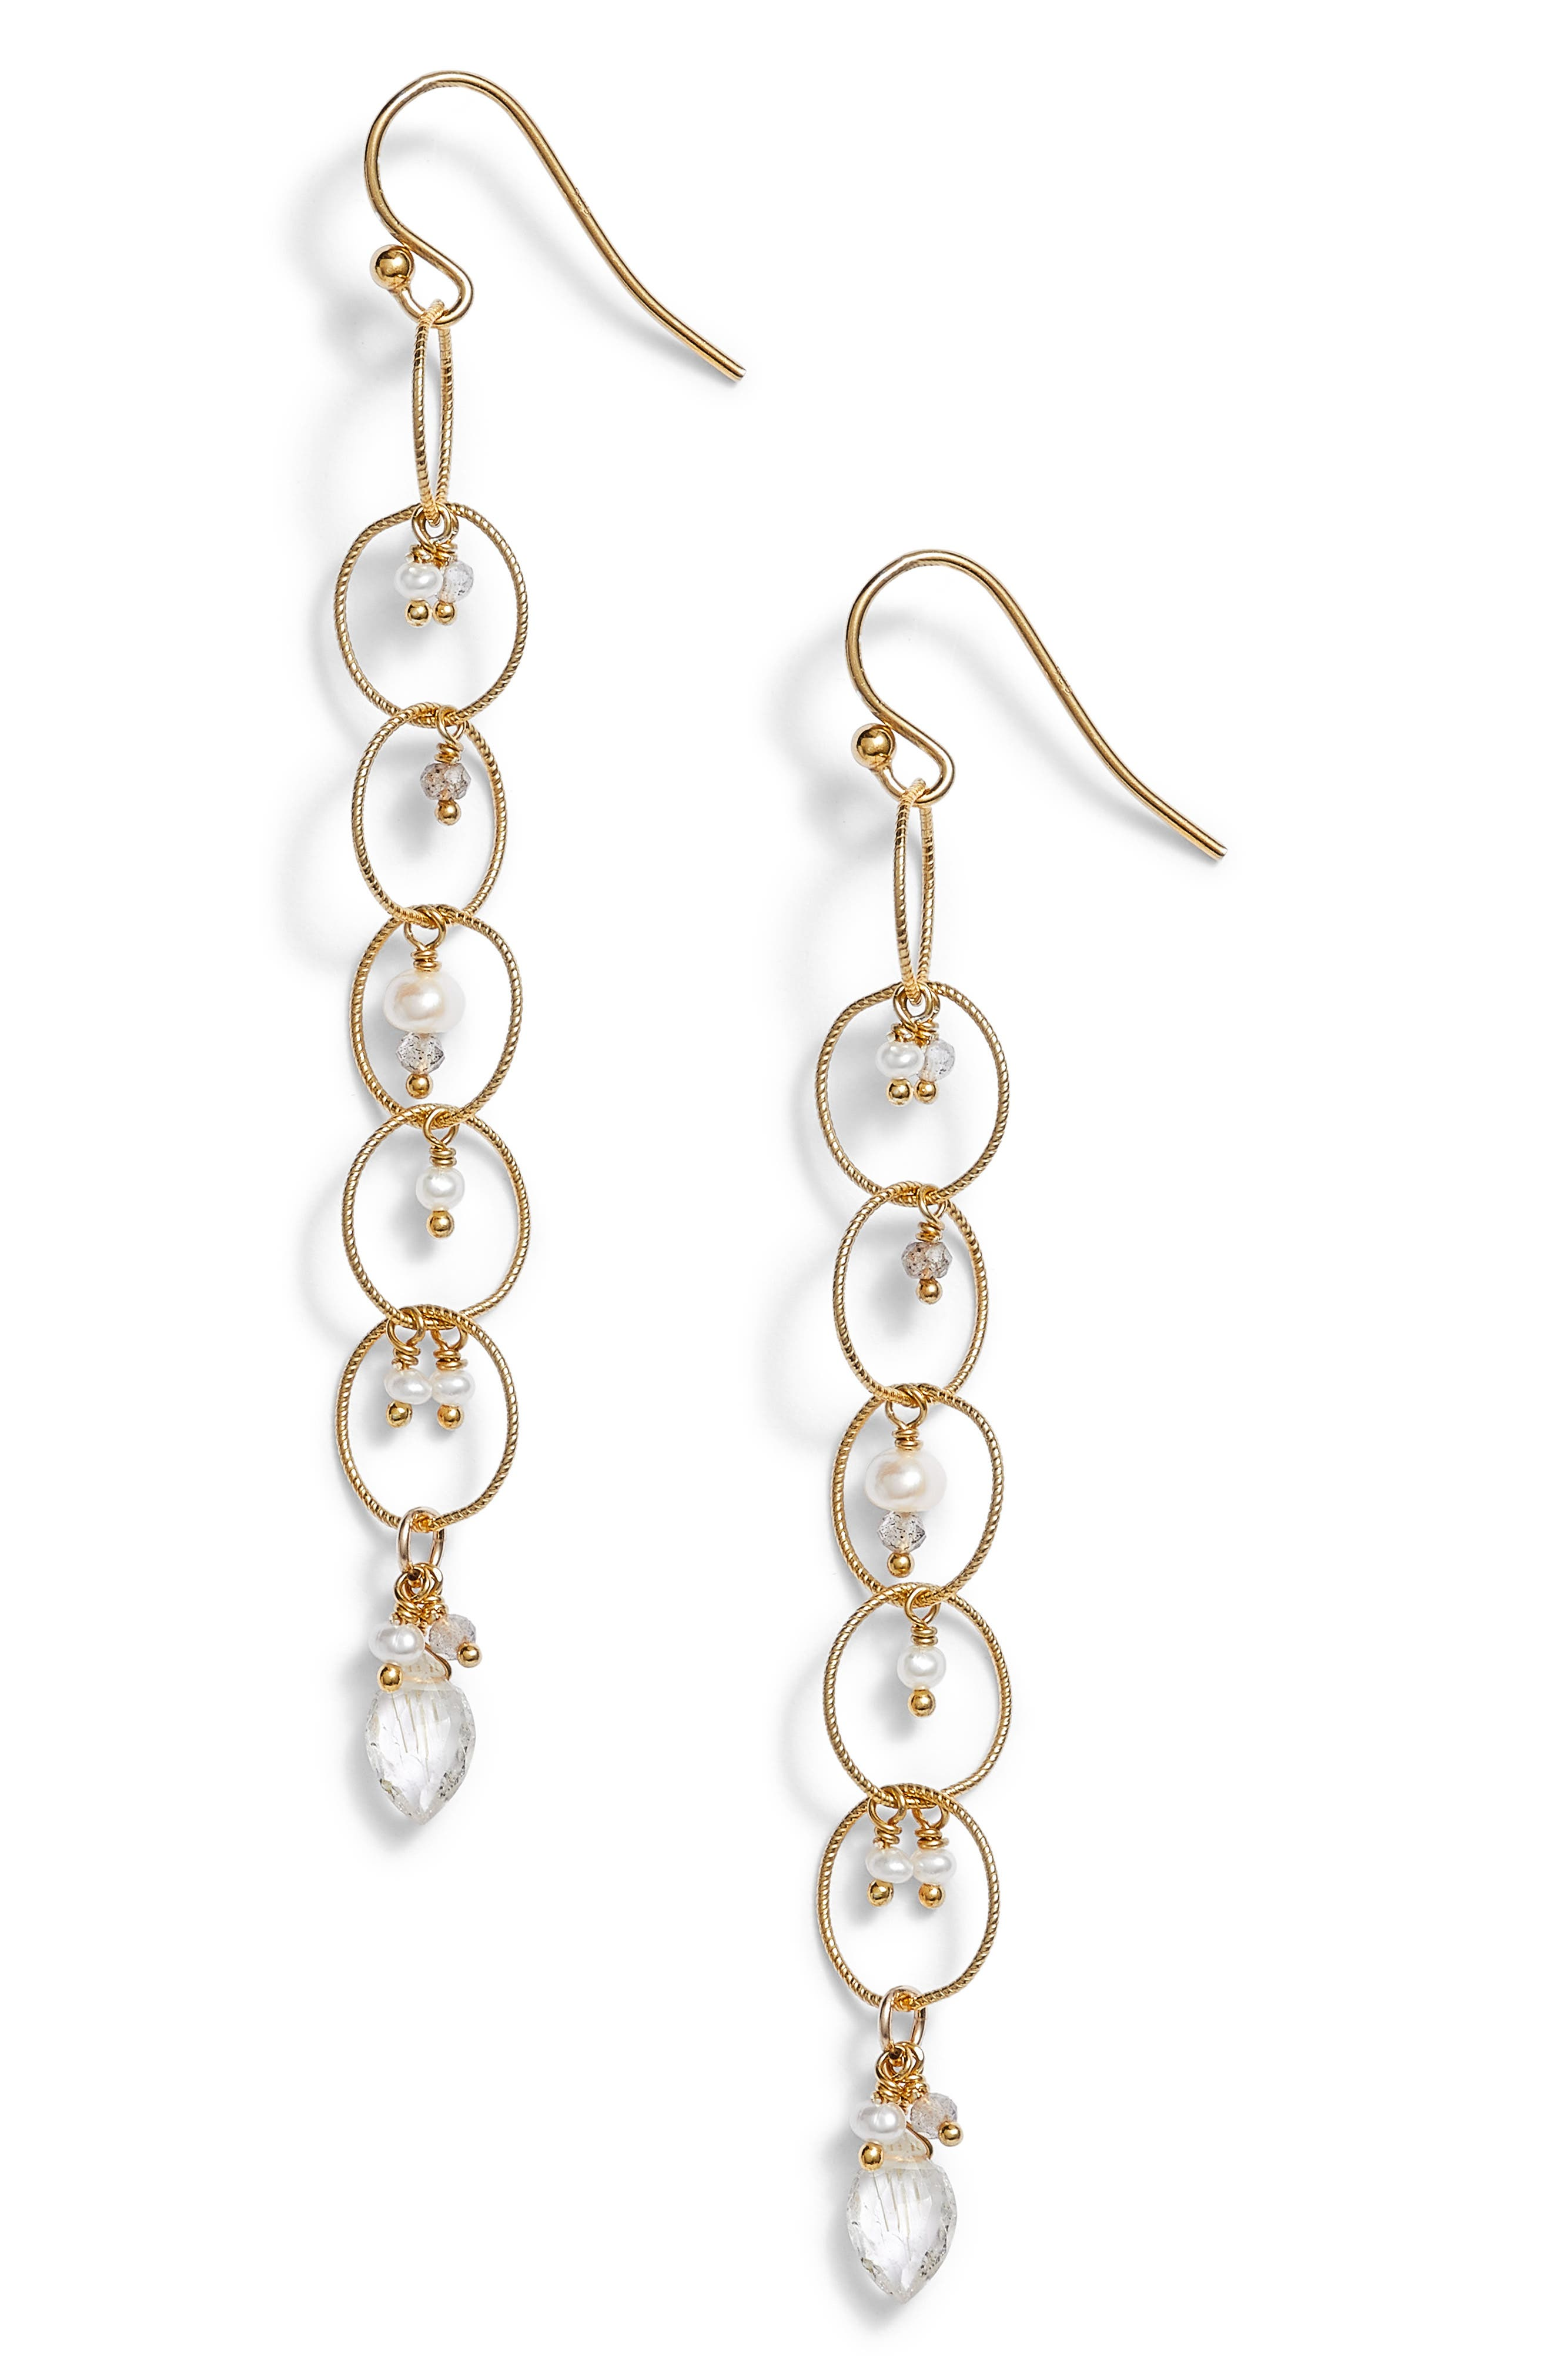 Chain Hoop Drop Earrings with Pearls,                             Main thumbnail 1, color,                             100